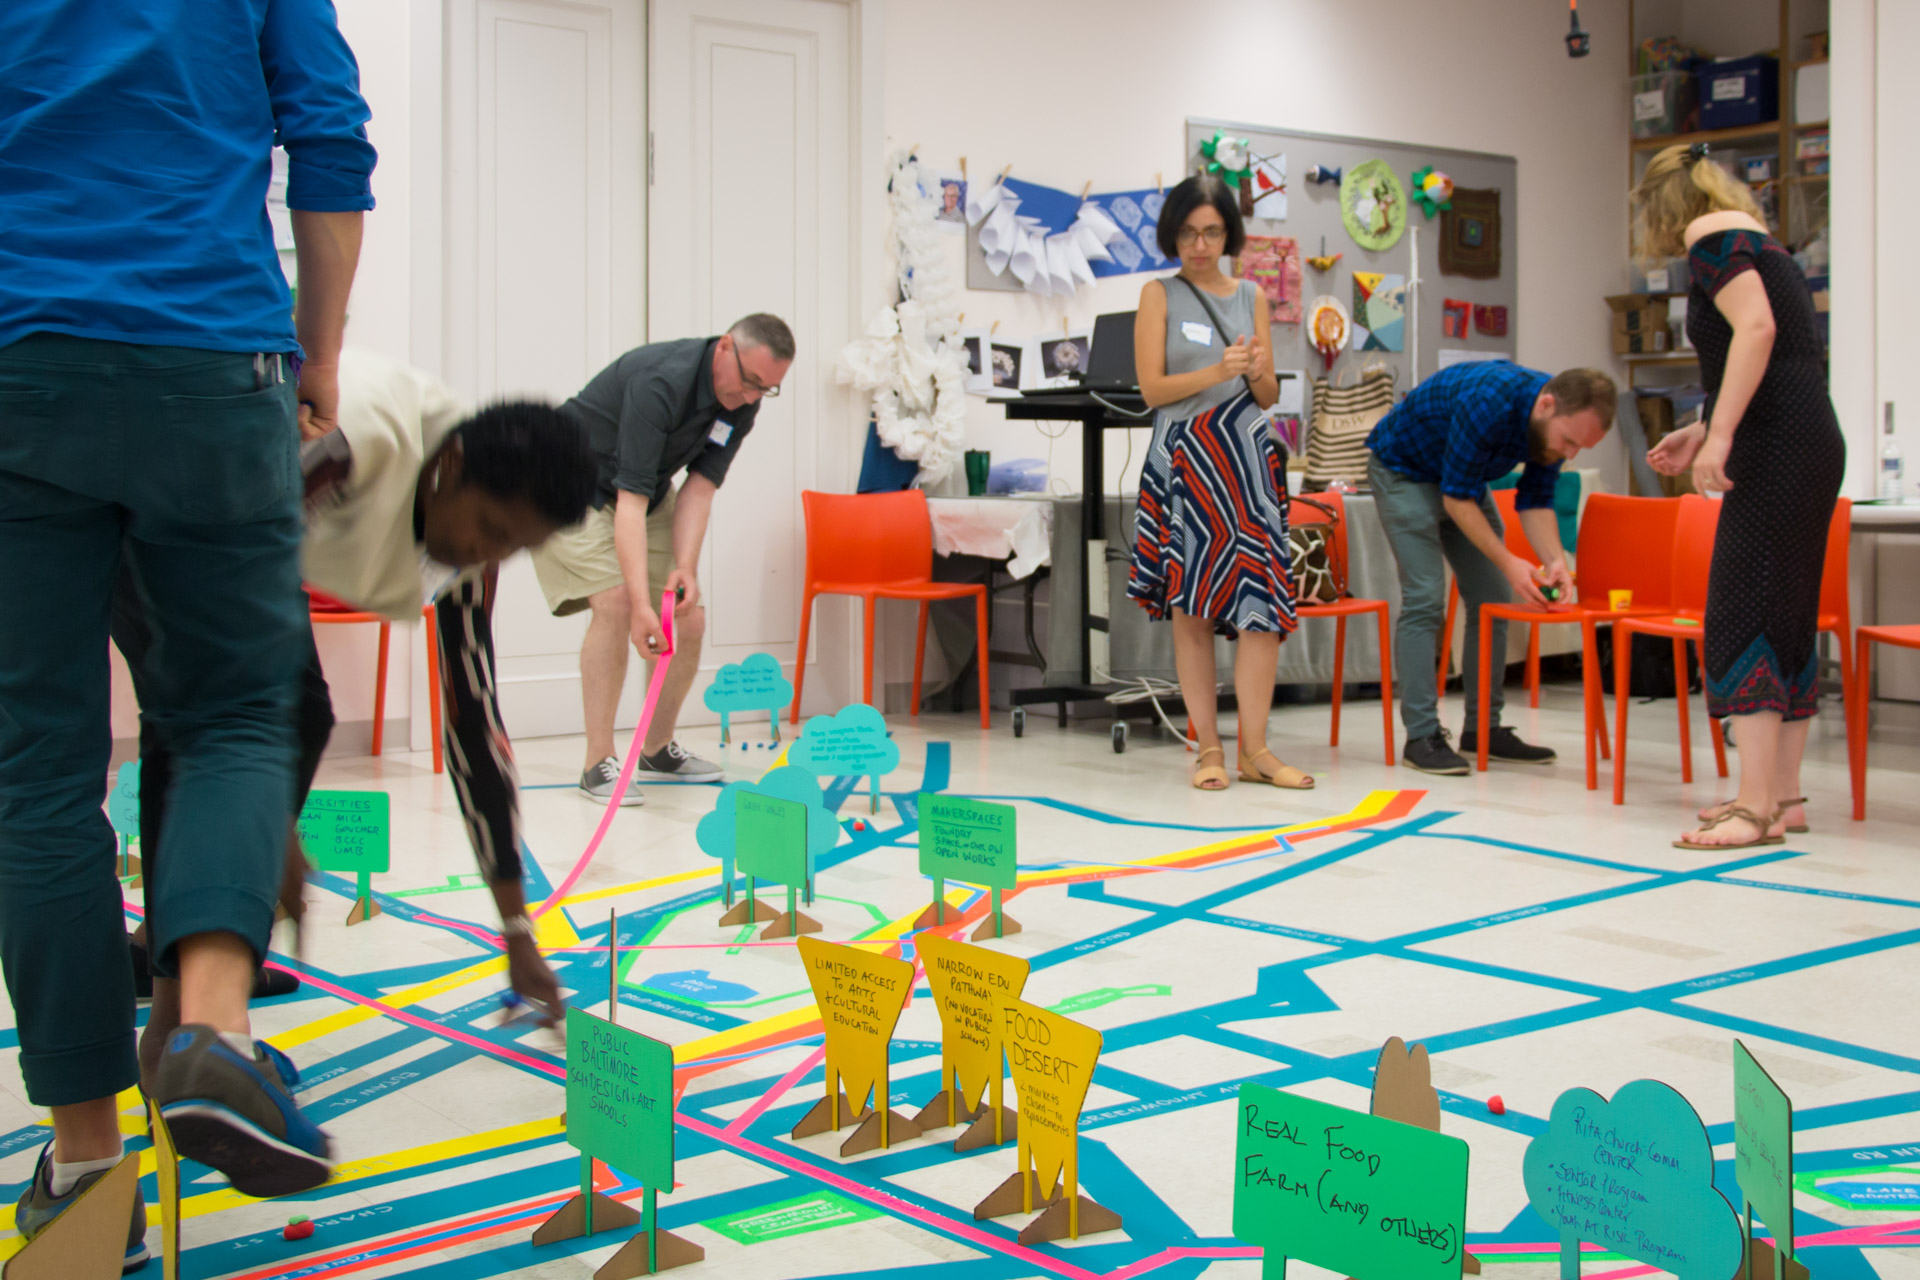 Visioning Home Mapping - participants laying tape